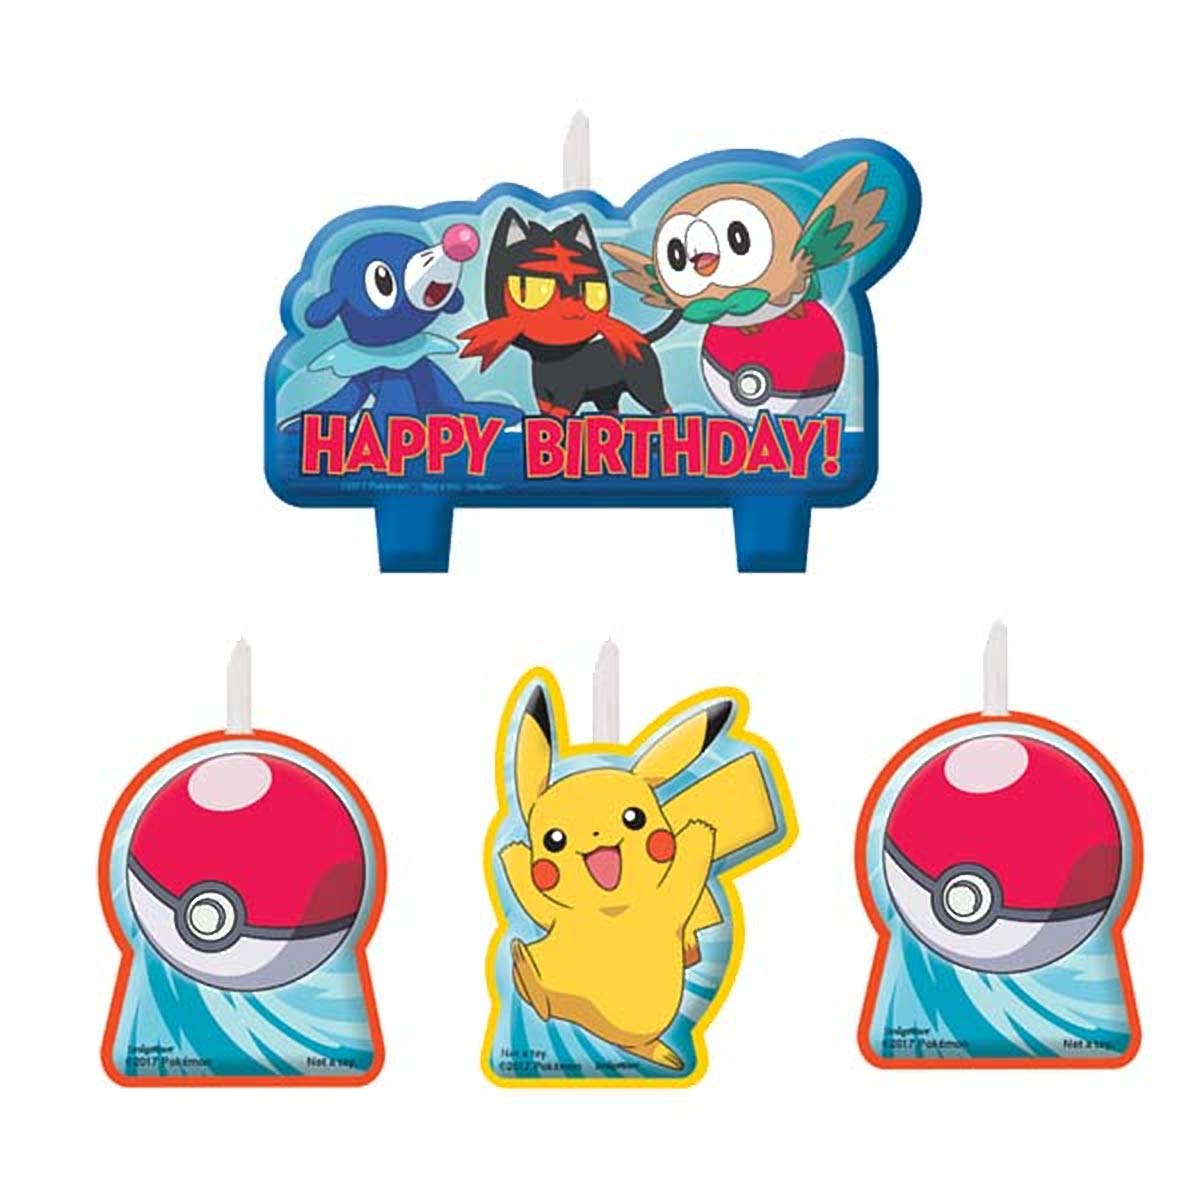 Napkins 4 Count Pokemon Birthday Candle Set, Multicolor AMI 171844